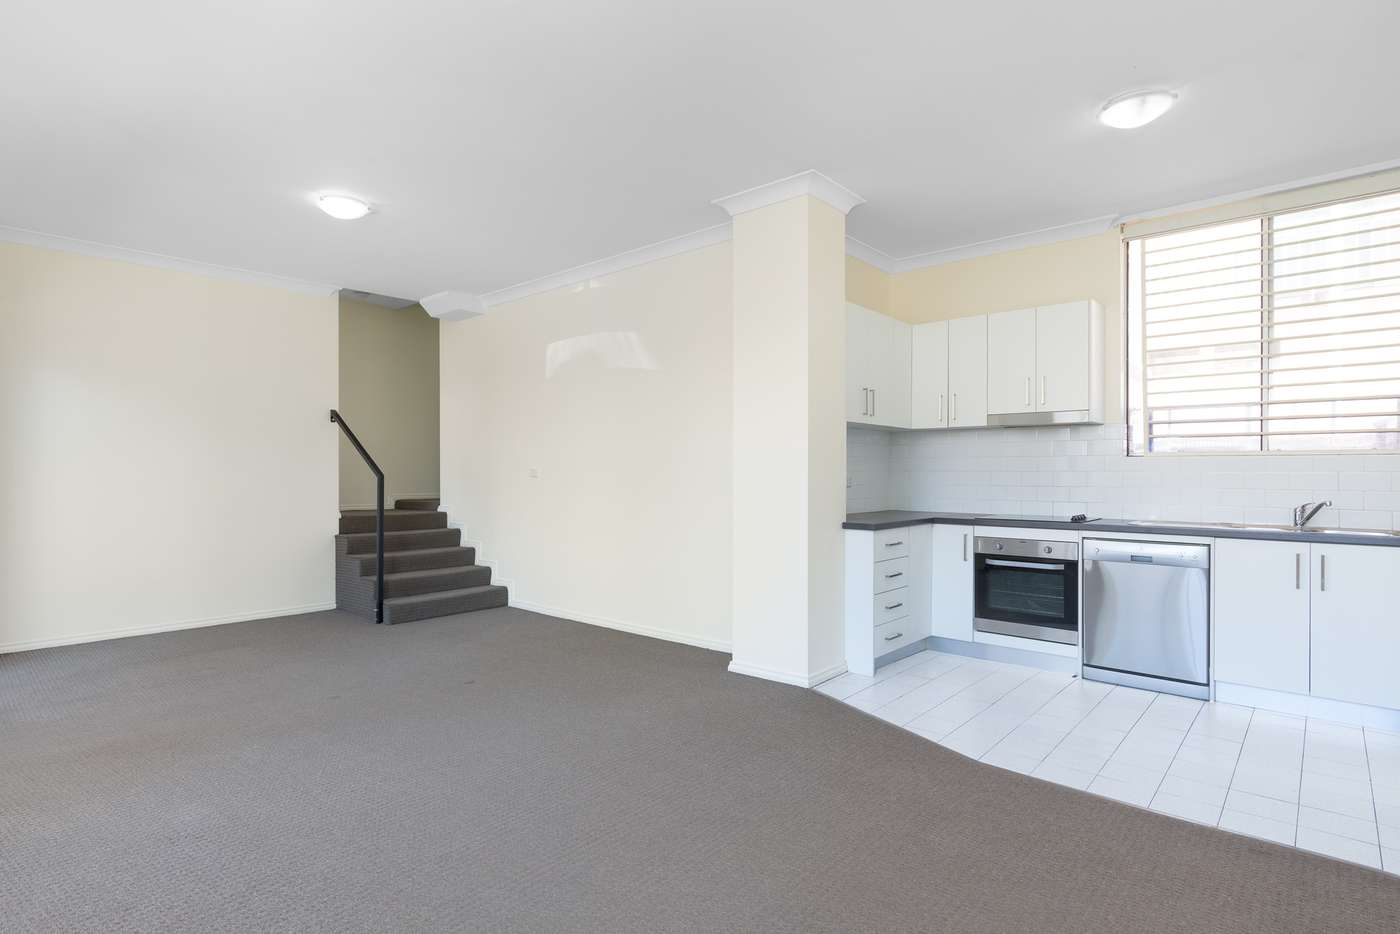 Fifth view of Homely apartment listing, 9/19-23 Forbes Street, Woolloomooloo NSW 2011